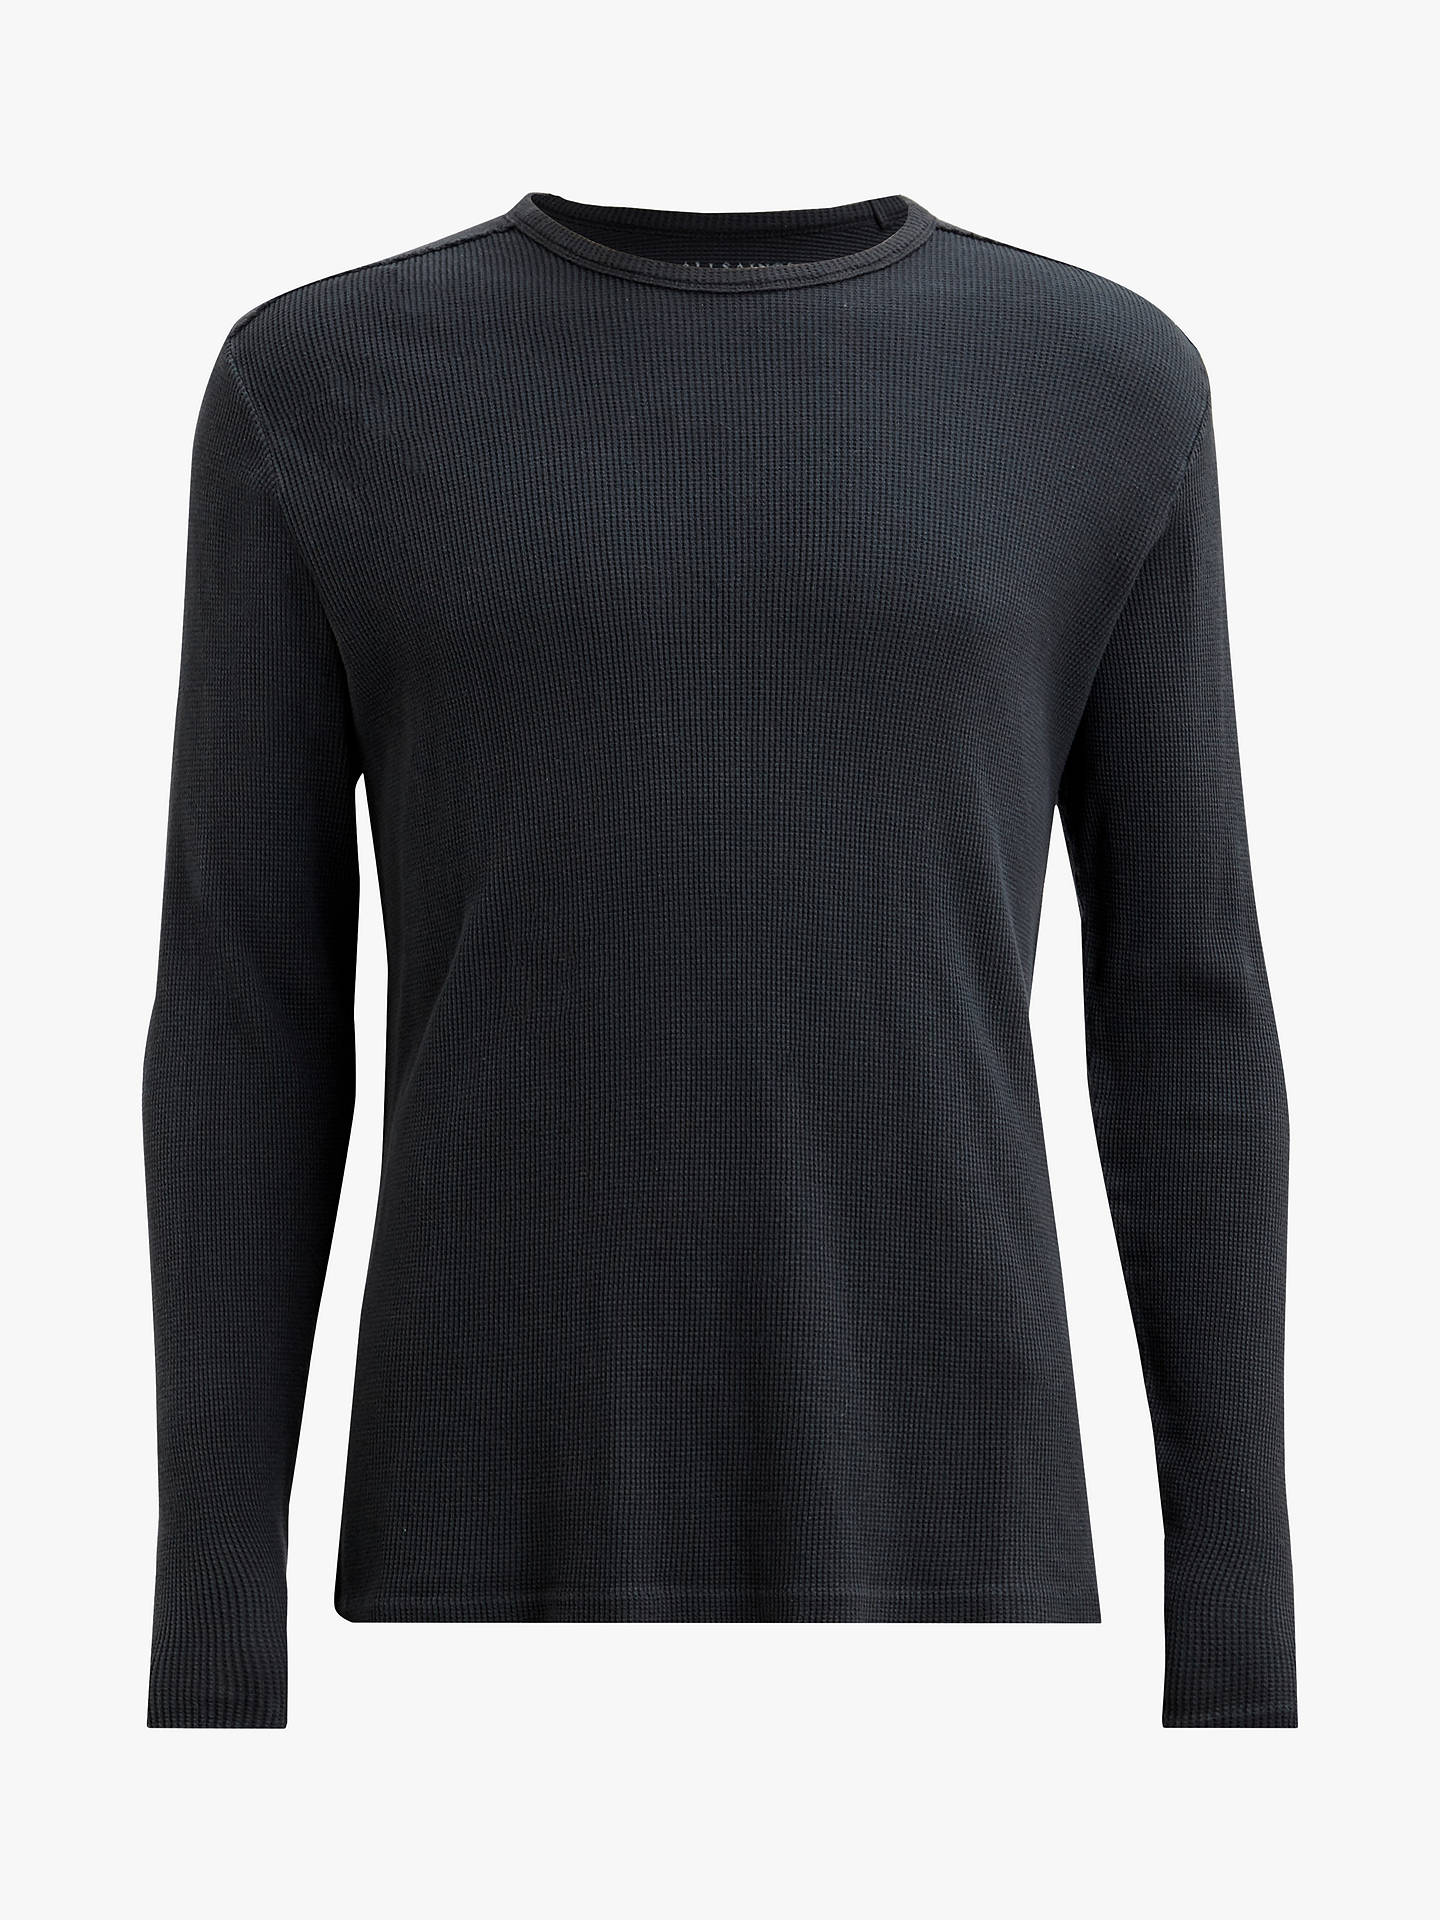 BuyAllSaints Cortex Coverstitch Waffle Texture T-Shirt, Black, XS Online at johnlewis.com